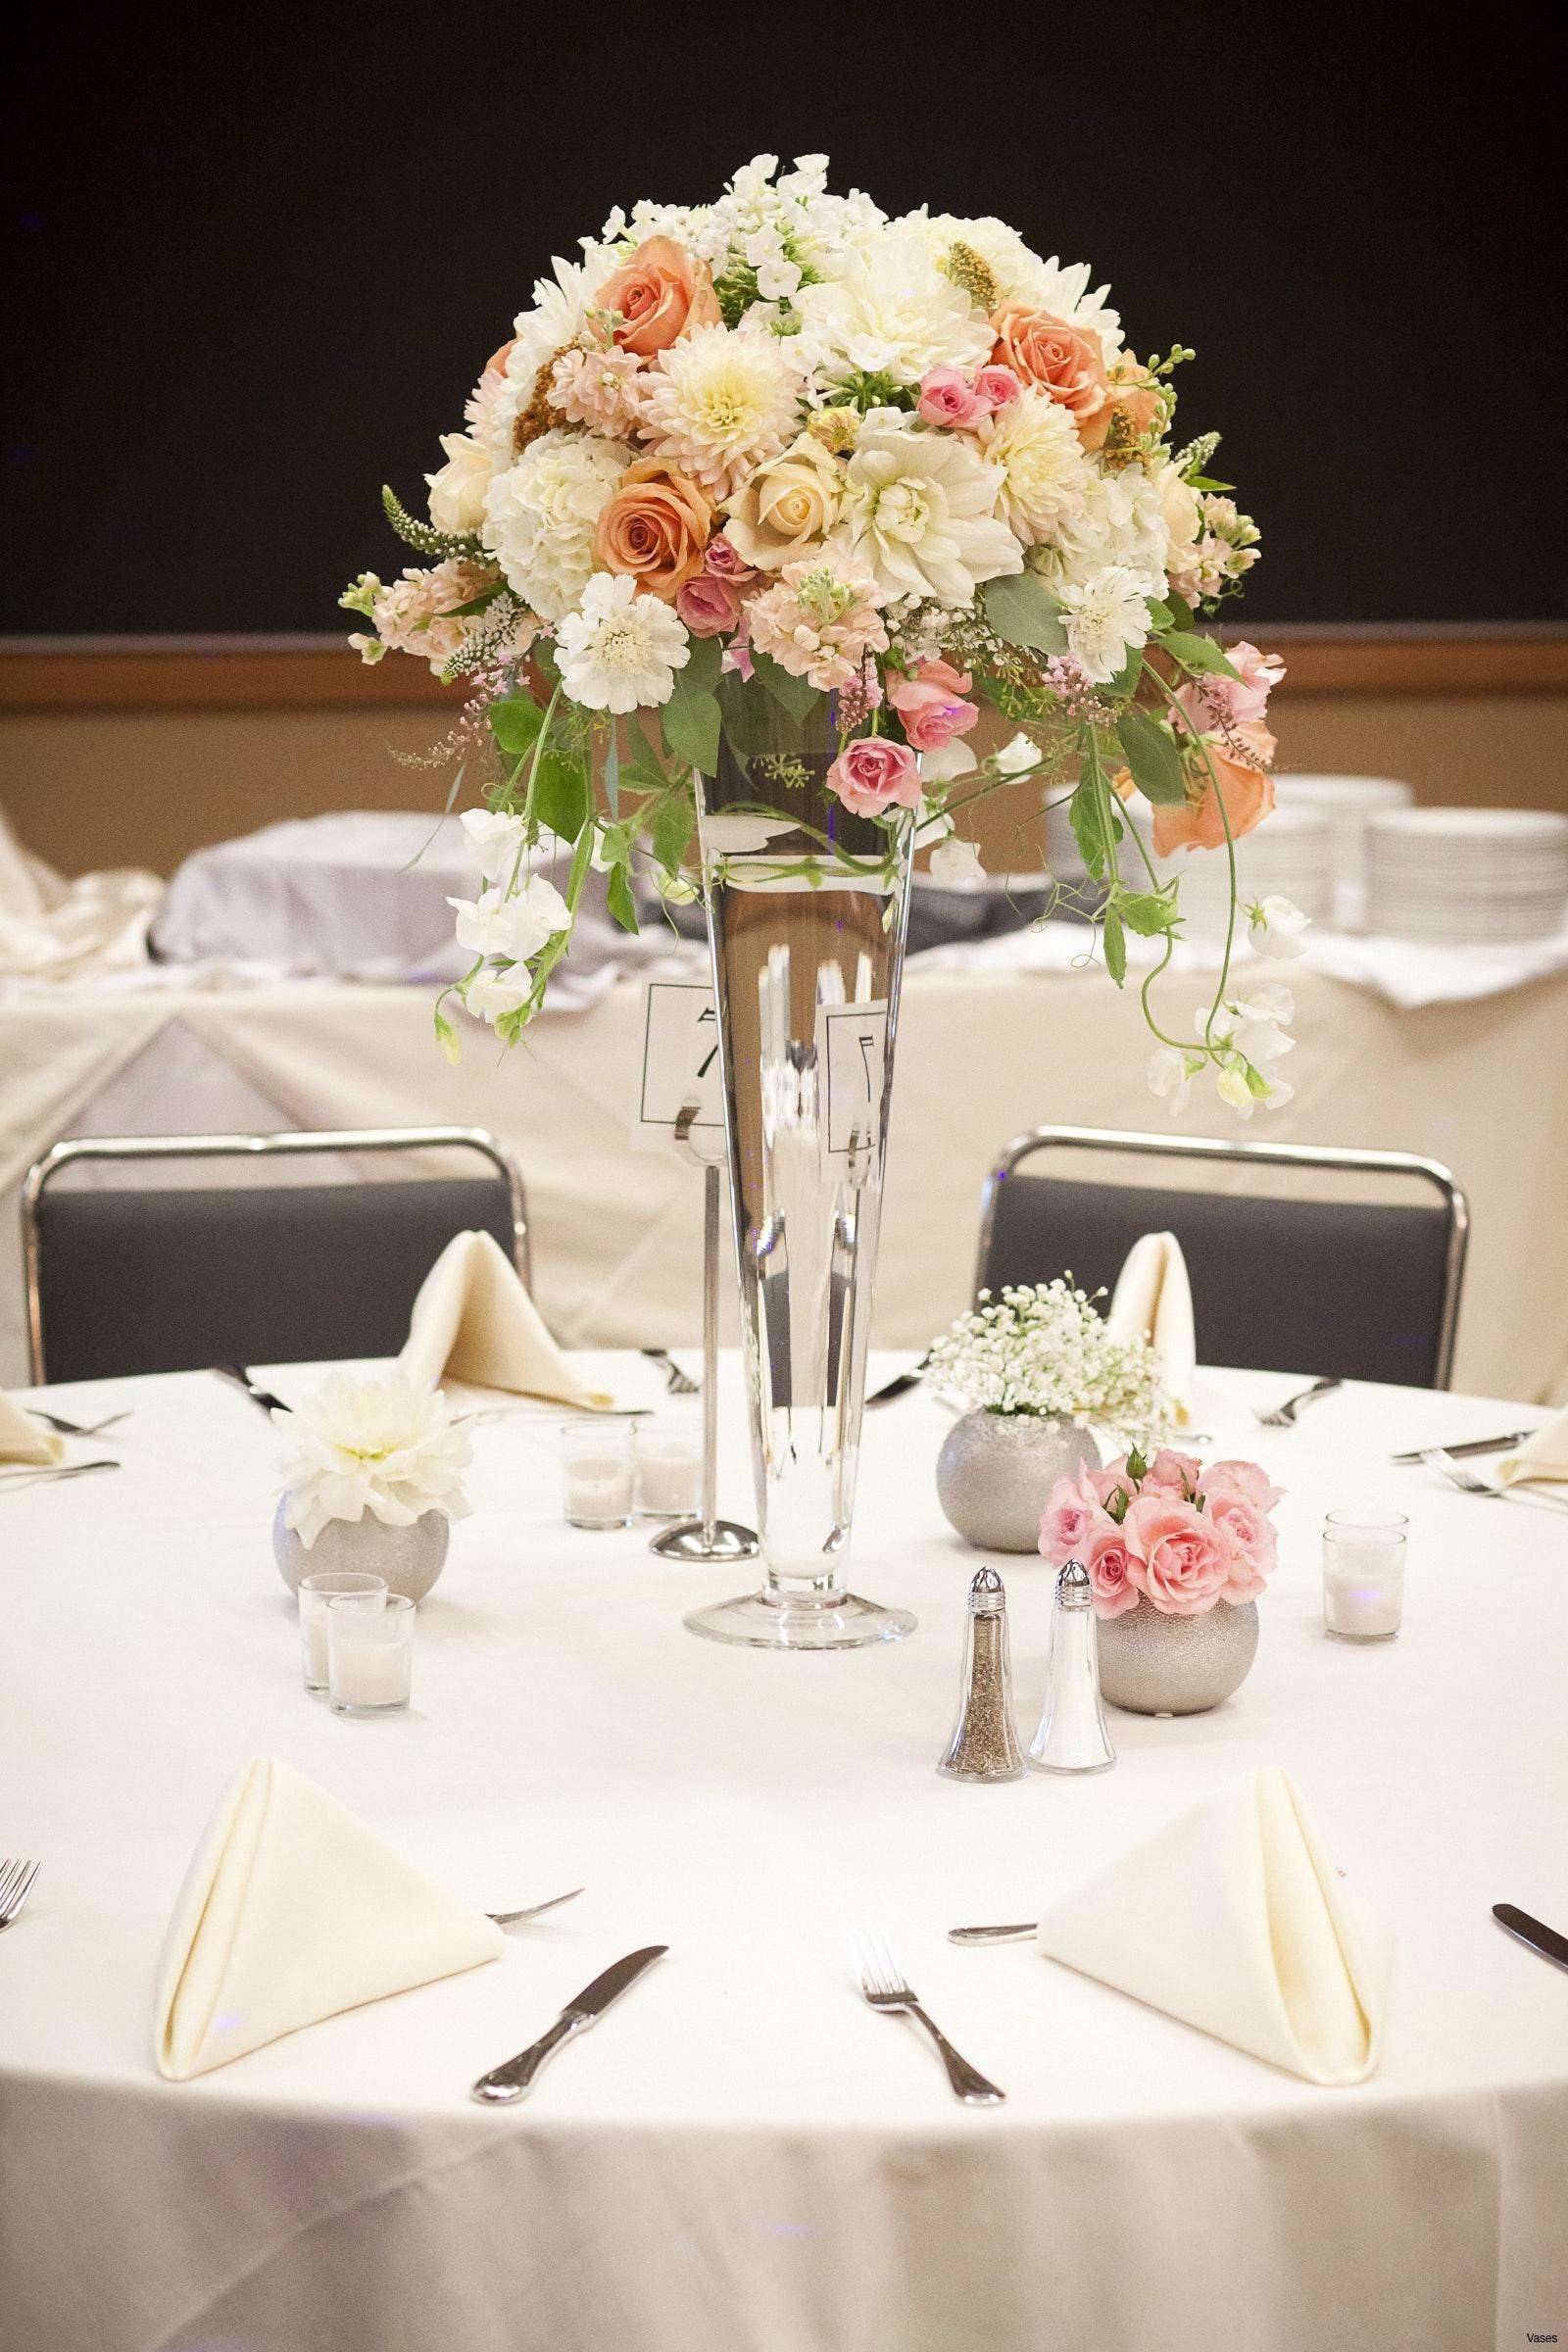 long vase decoration ideas of wedding table decoration ideas on a budget beautiful living room regarding wedding table decoration ideas on a budget beautiful living room vases wedding inspirational h vases candy